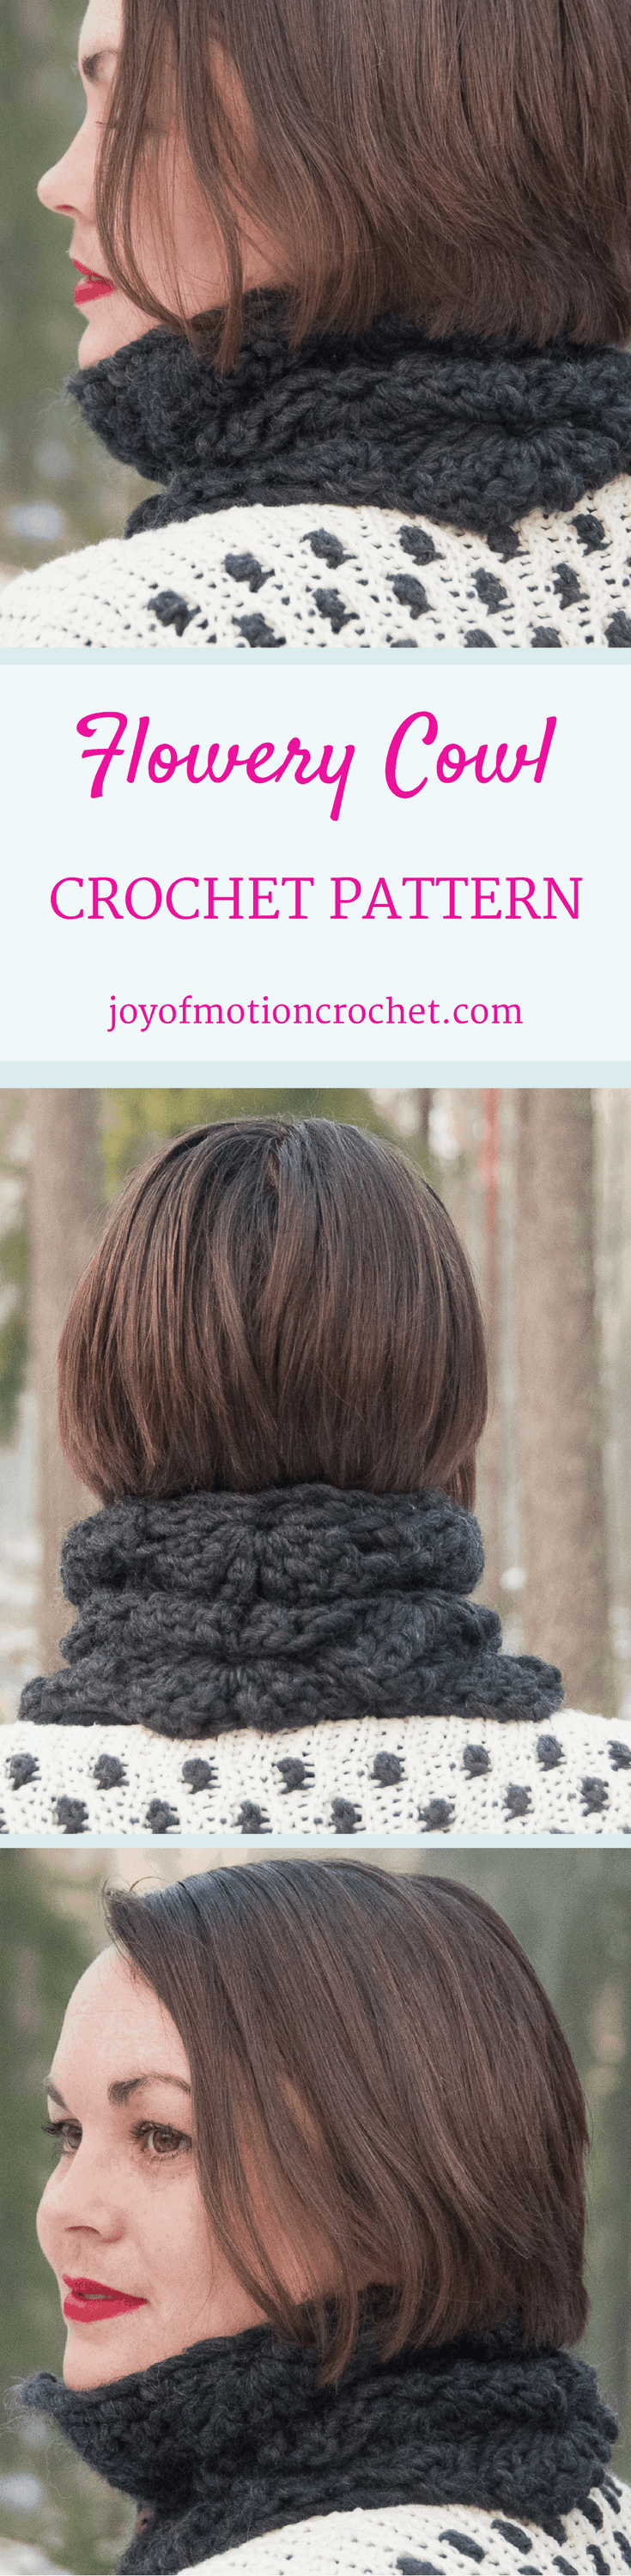 The Flowery Cowl. Crochet pattern for a warm winter cowl. This cowl crochet pattern is one-size, but can be customized. Cowl crochet patterns. Crochet pattern cowls. Winter crochet patterns. Click link to learn more.